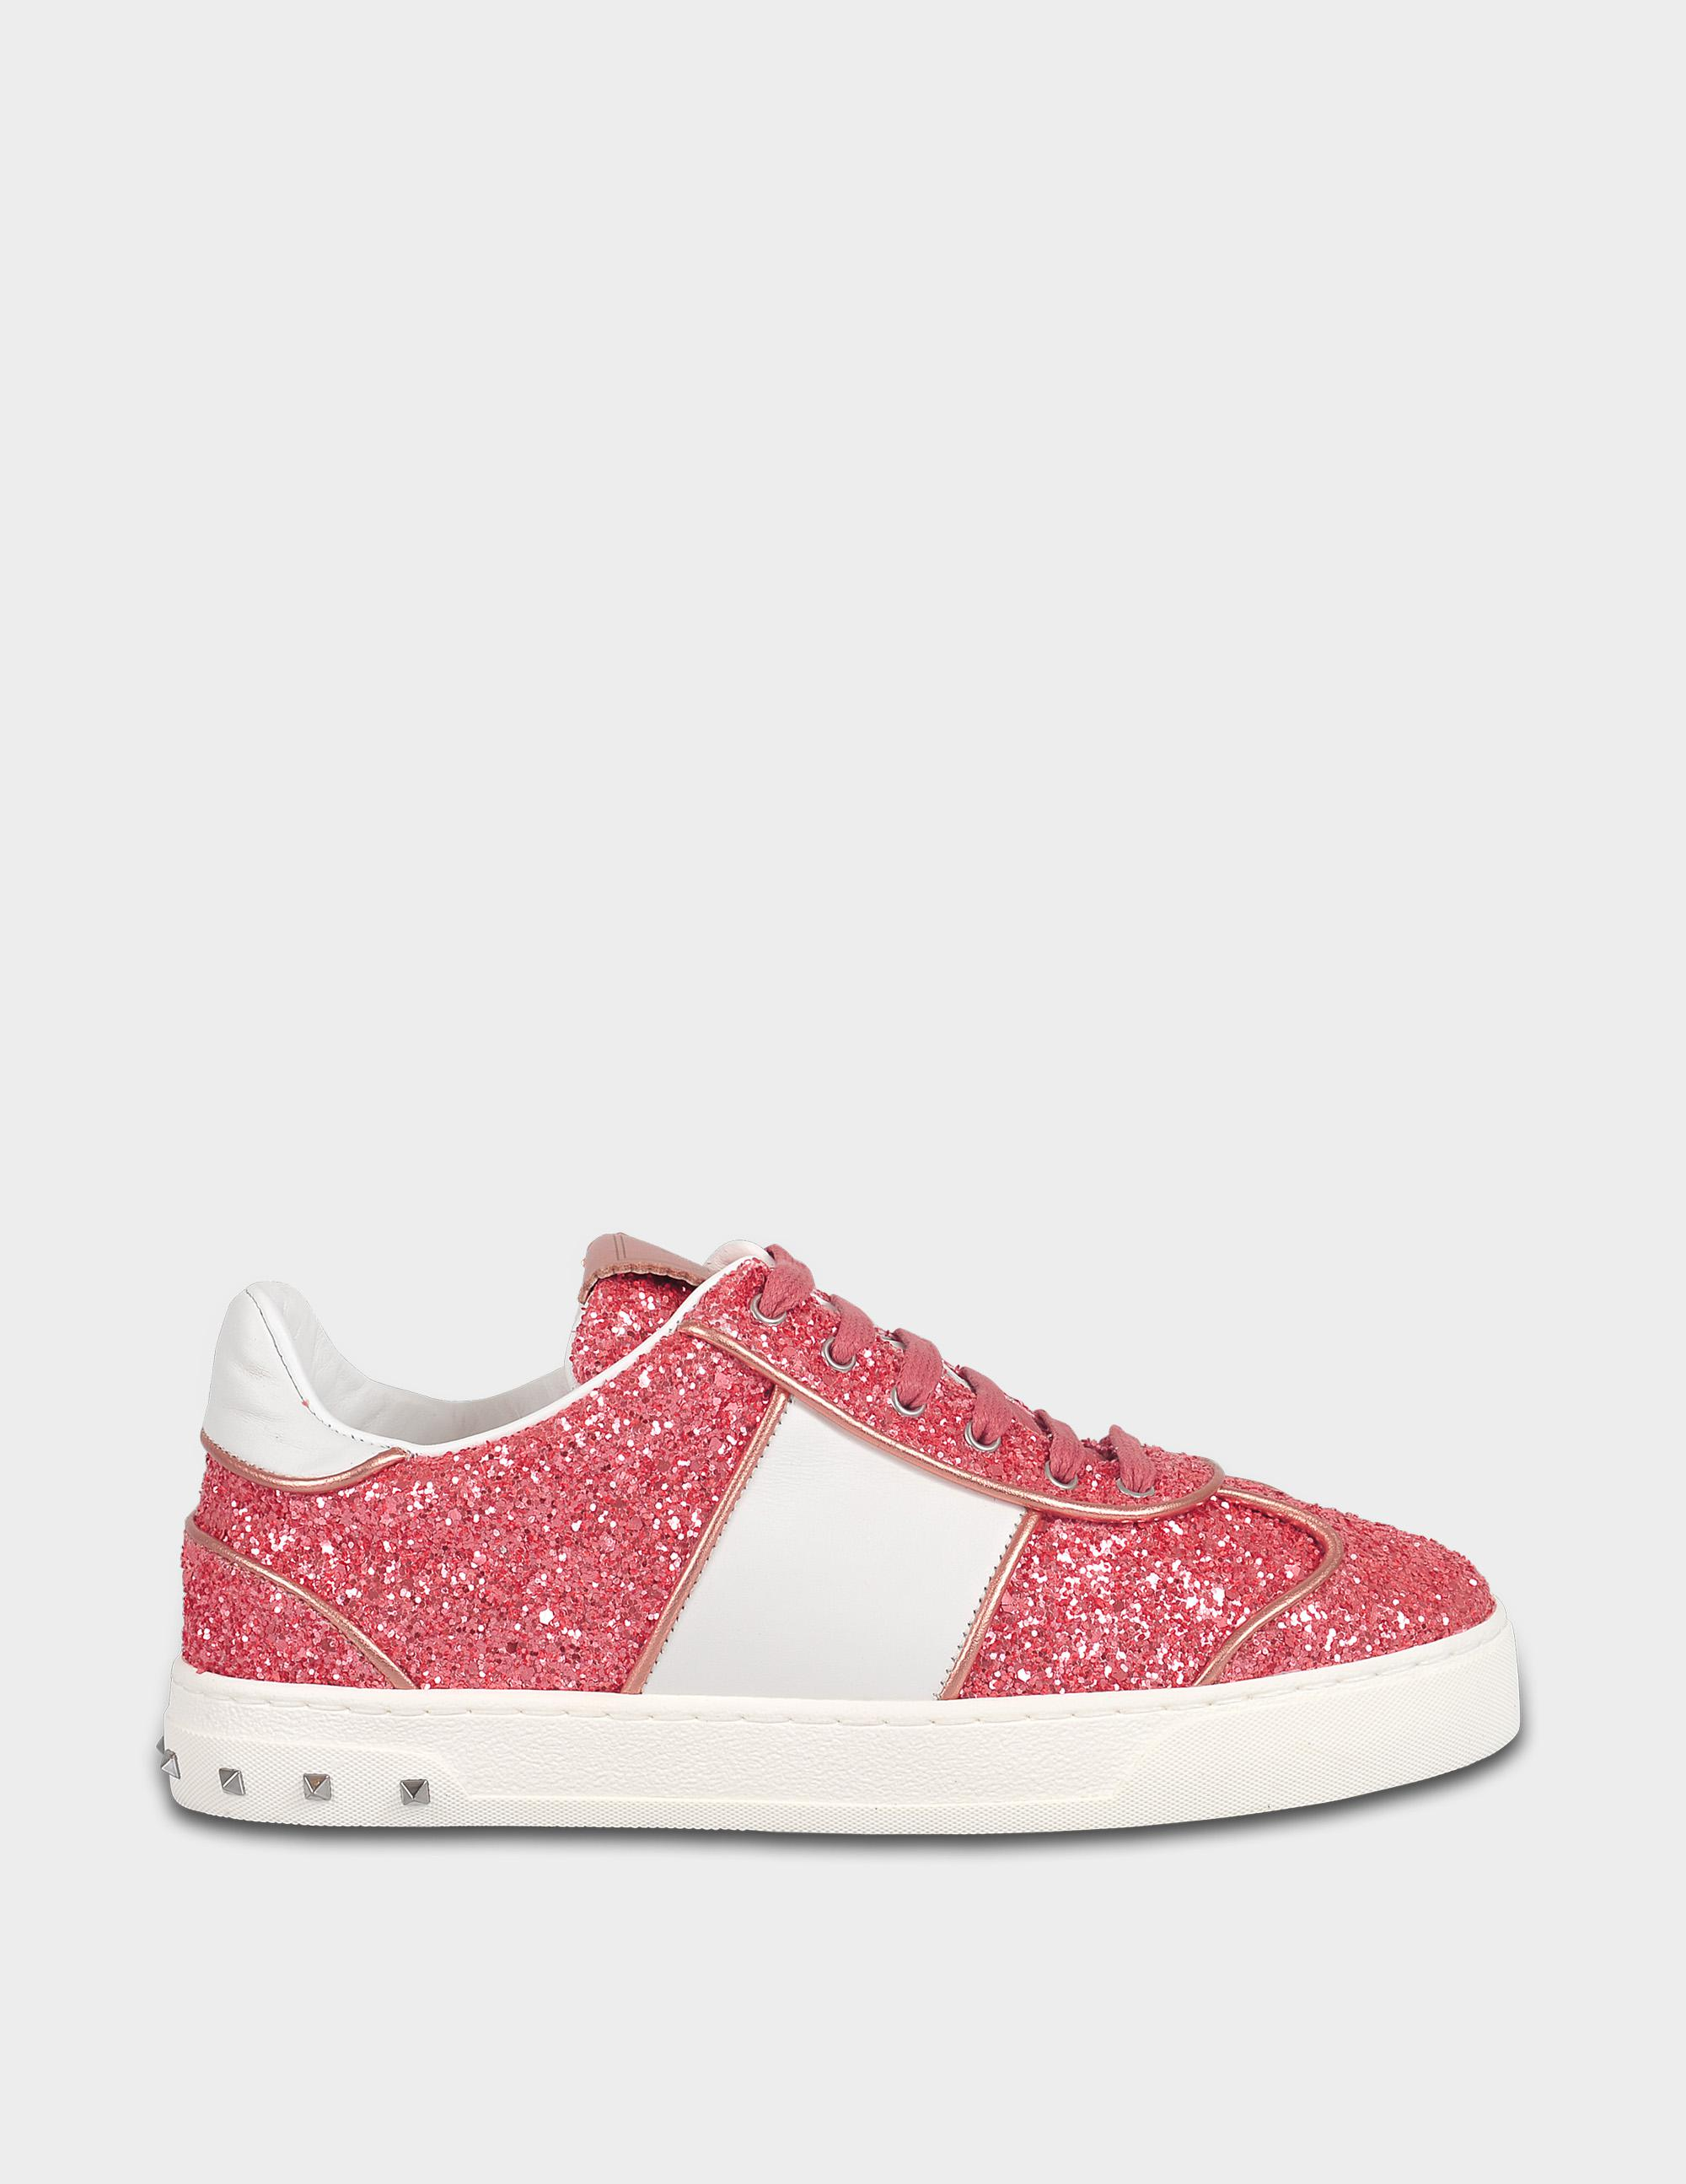 Fly Crex Glitter Sneakers in Shadow Pink Glitter and Calfskin Valentino Cheap Sale How Much sDbeZ8GKt